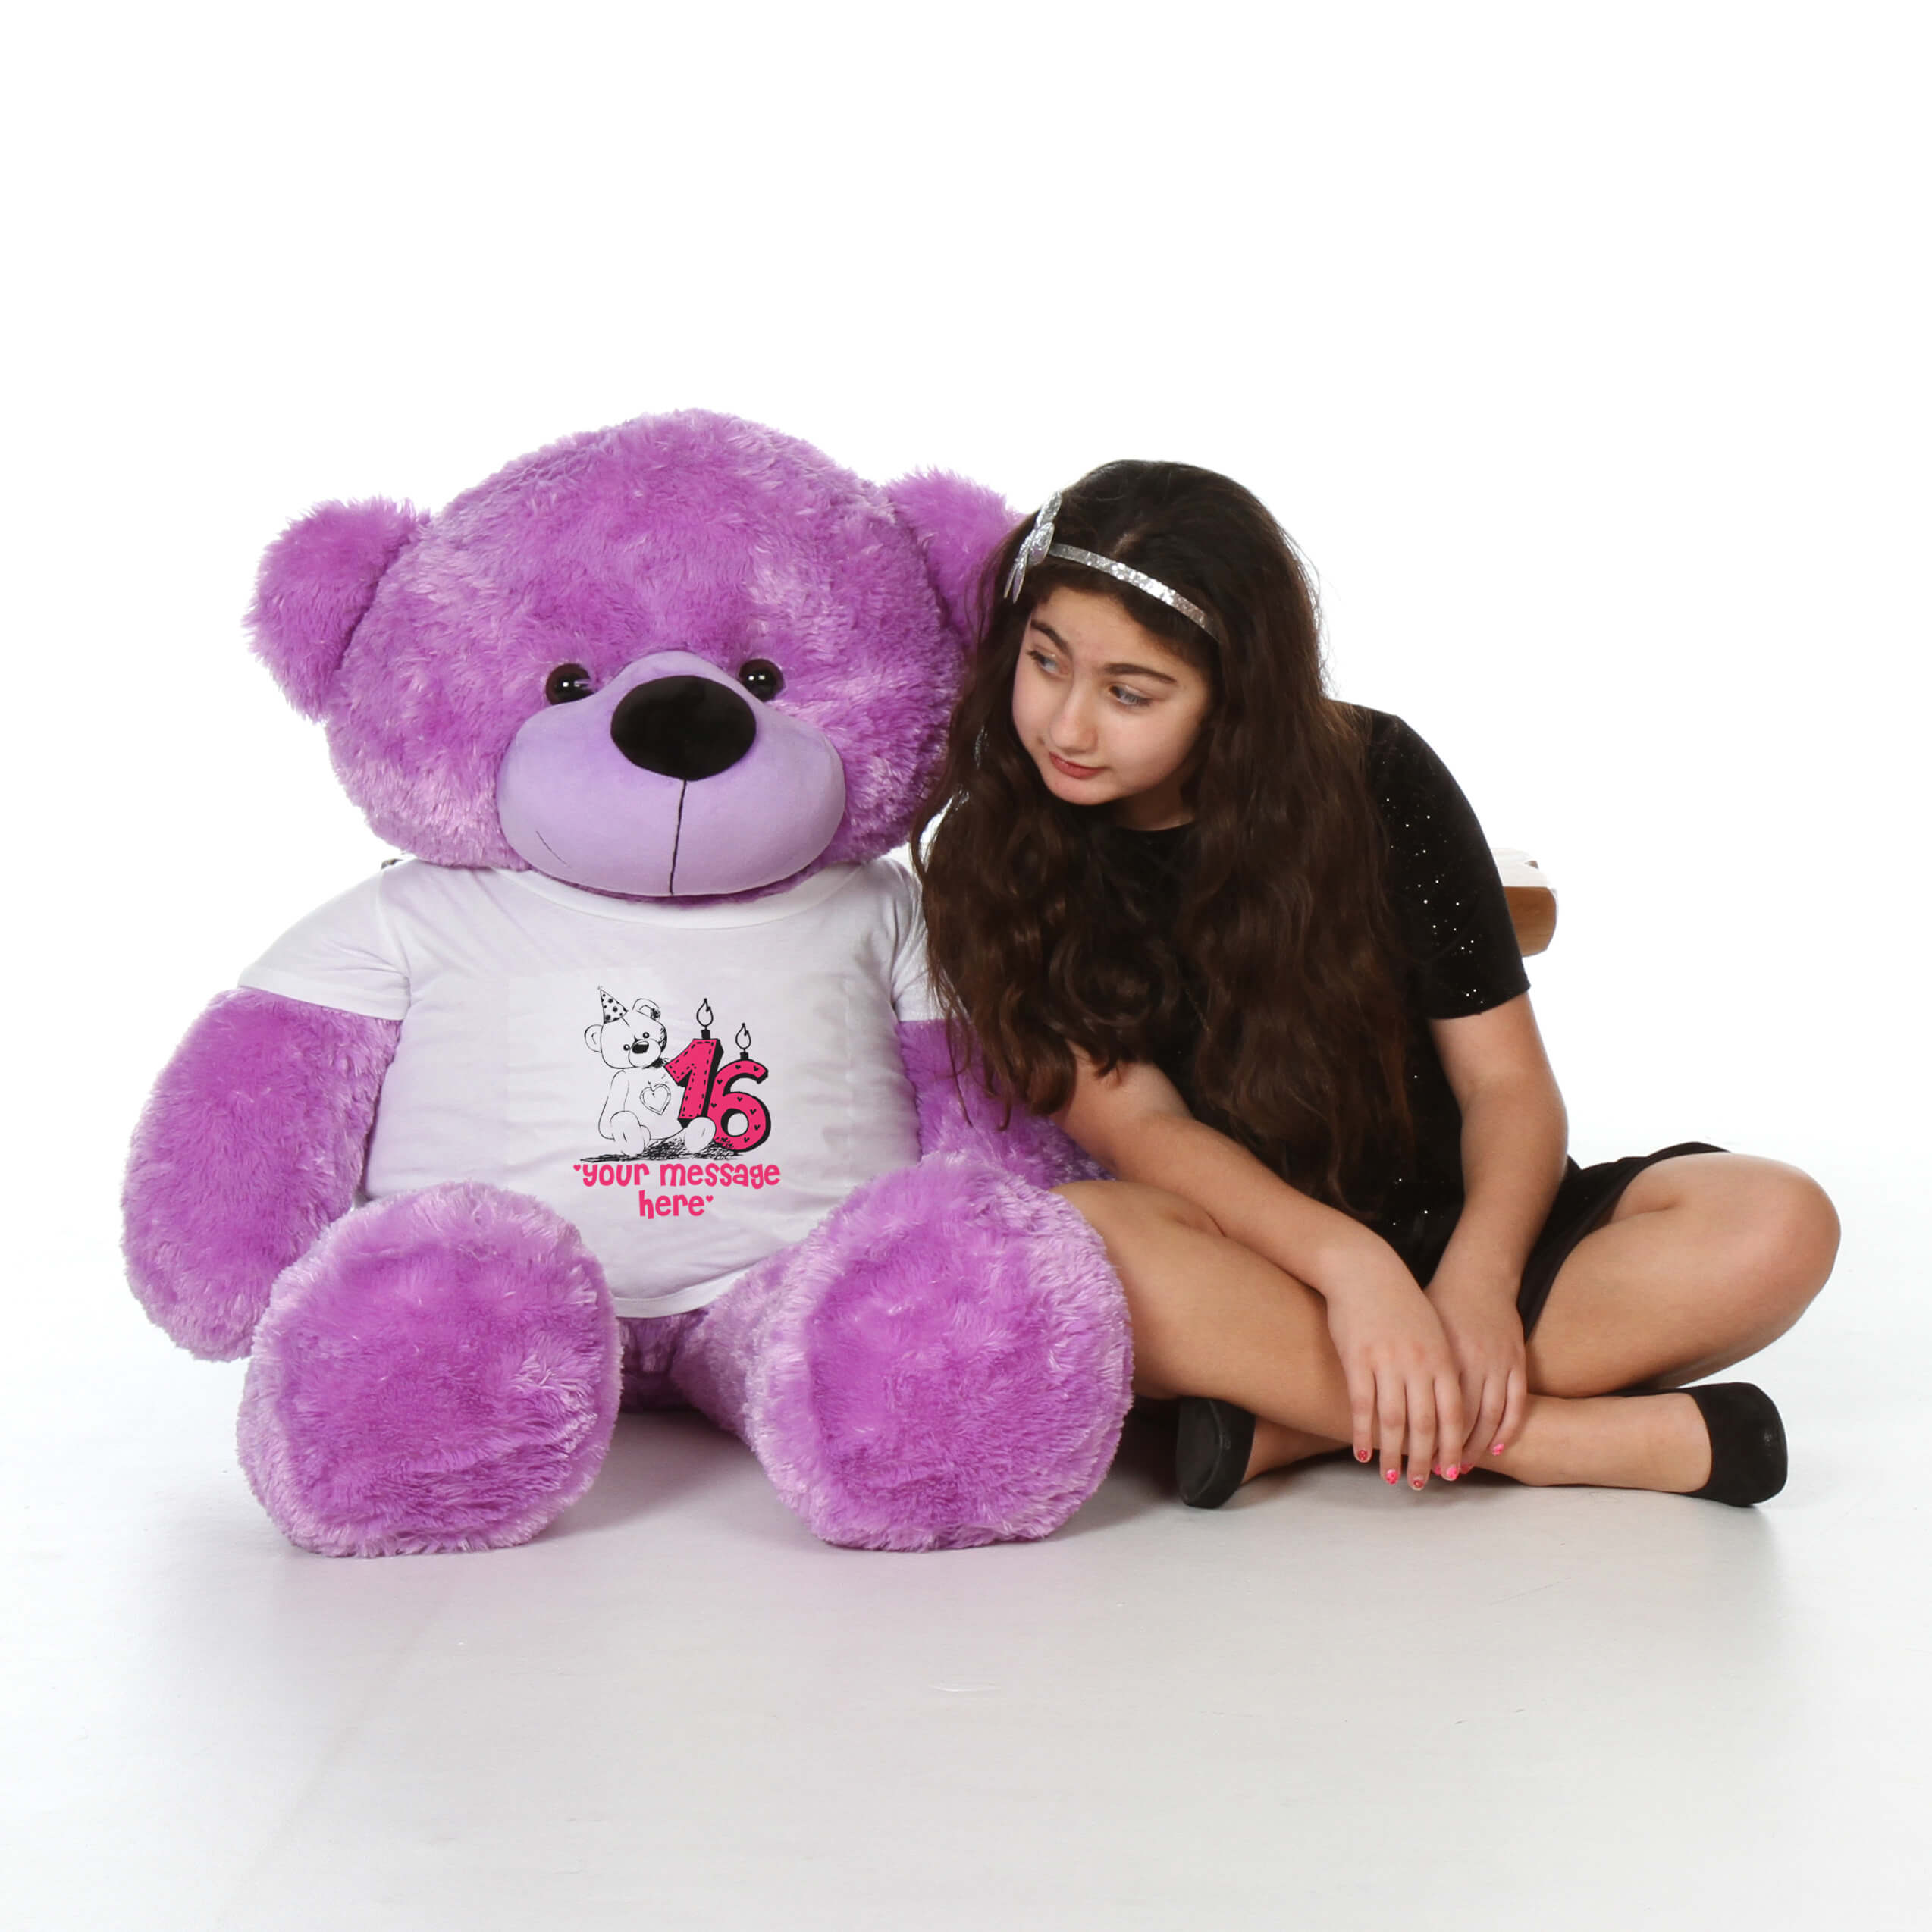 4ft-giant-teddy-bear-purple-deedee-cuddles-in-a-happy-birthday-your-message-here-t-shirt.jpg